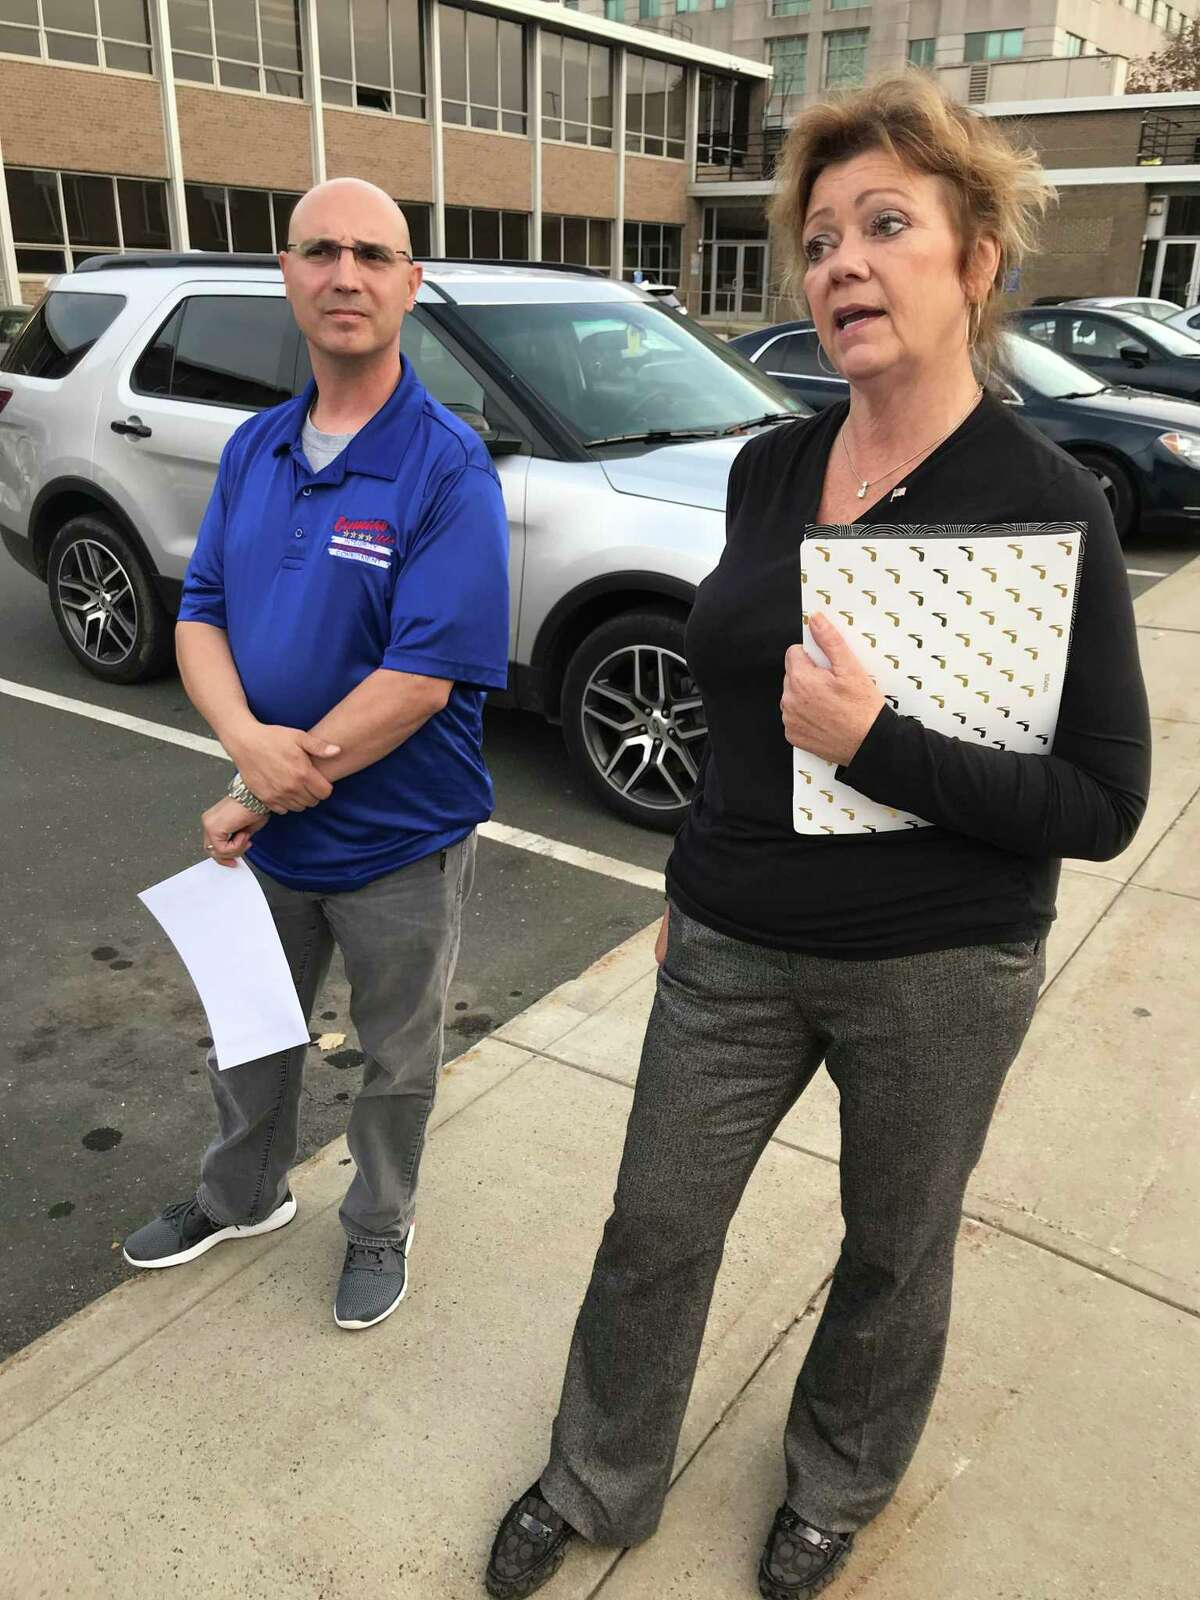 Linda Szynkowicz of Middletown, founder and president of Fight Voter Fraud Inc., in a file photo.